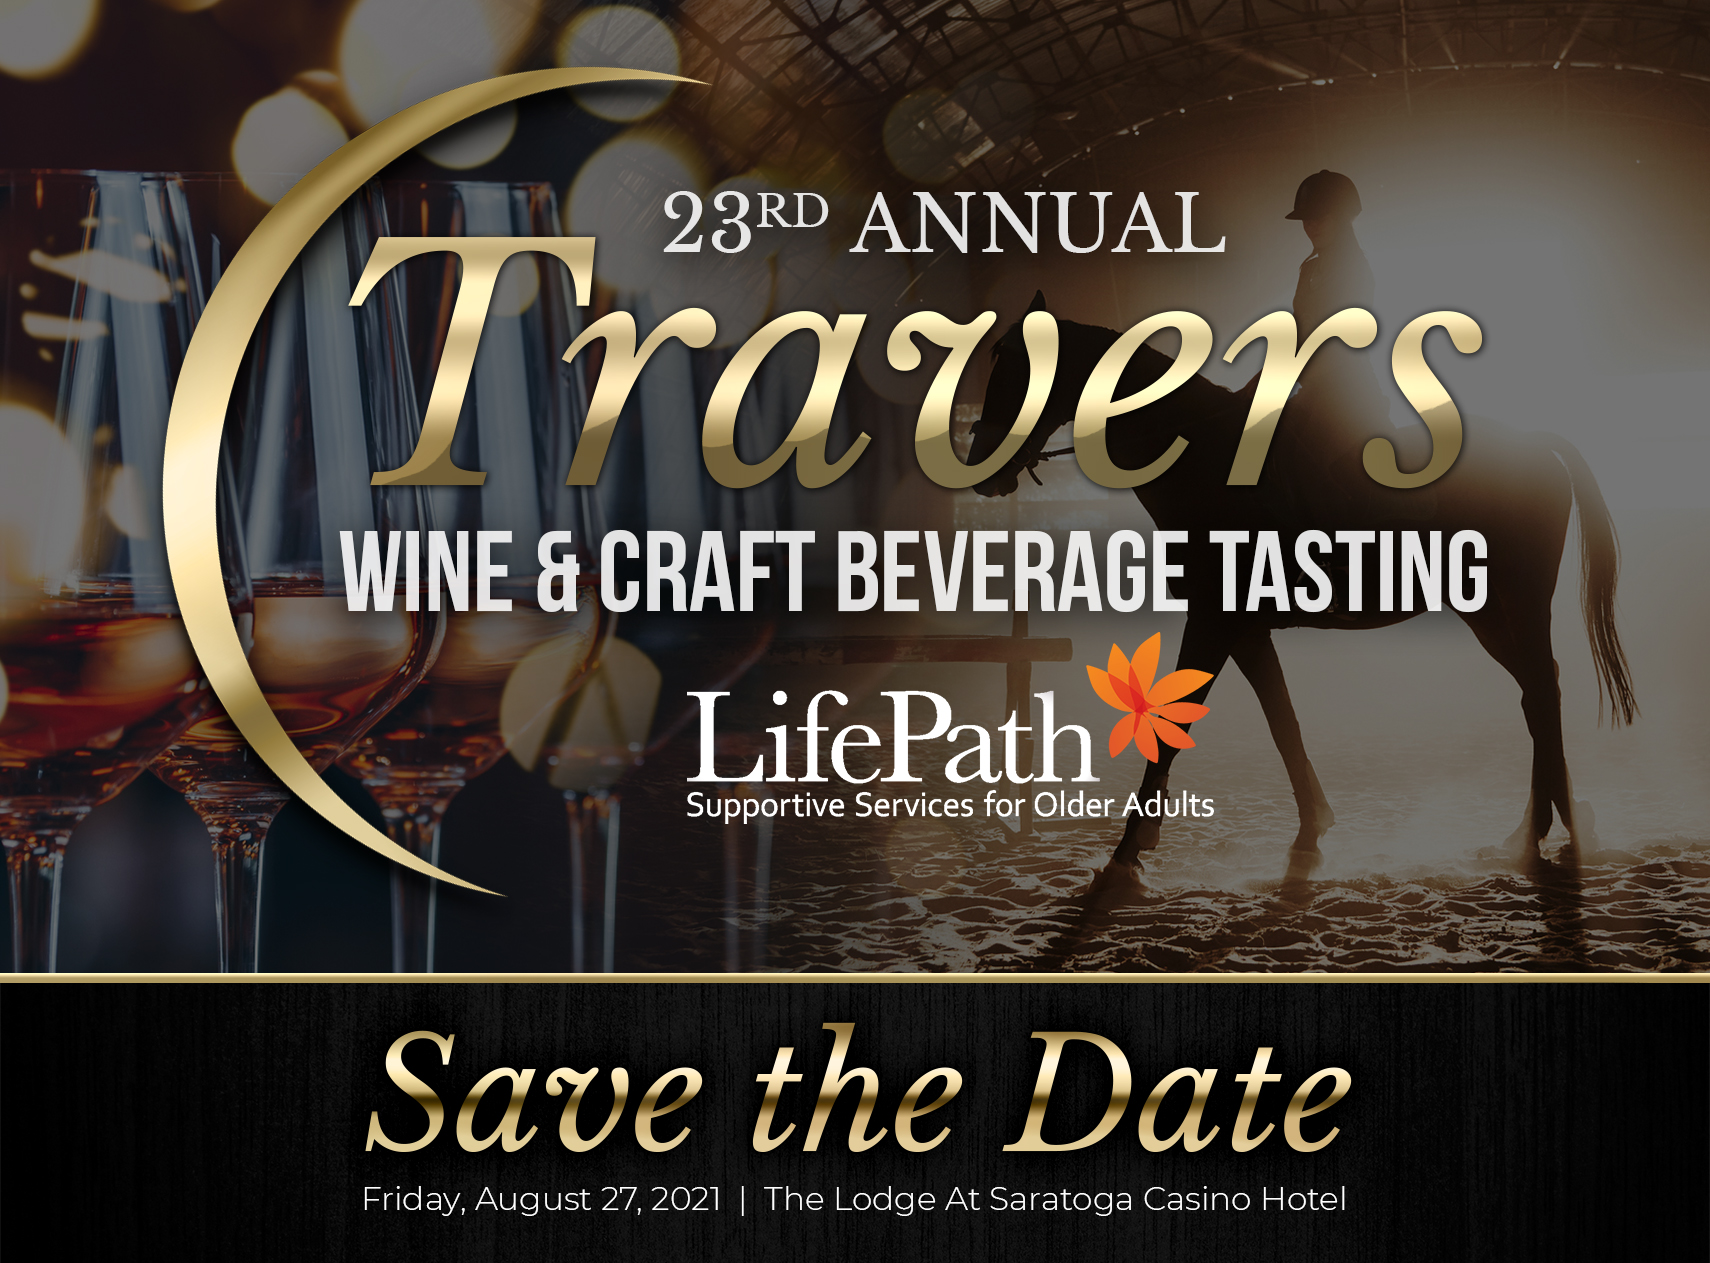 23rd Annual Wine & Craft Beverage Tasting Fundraising Event